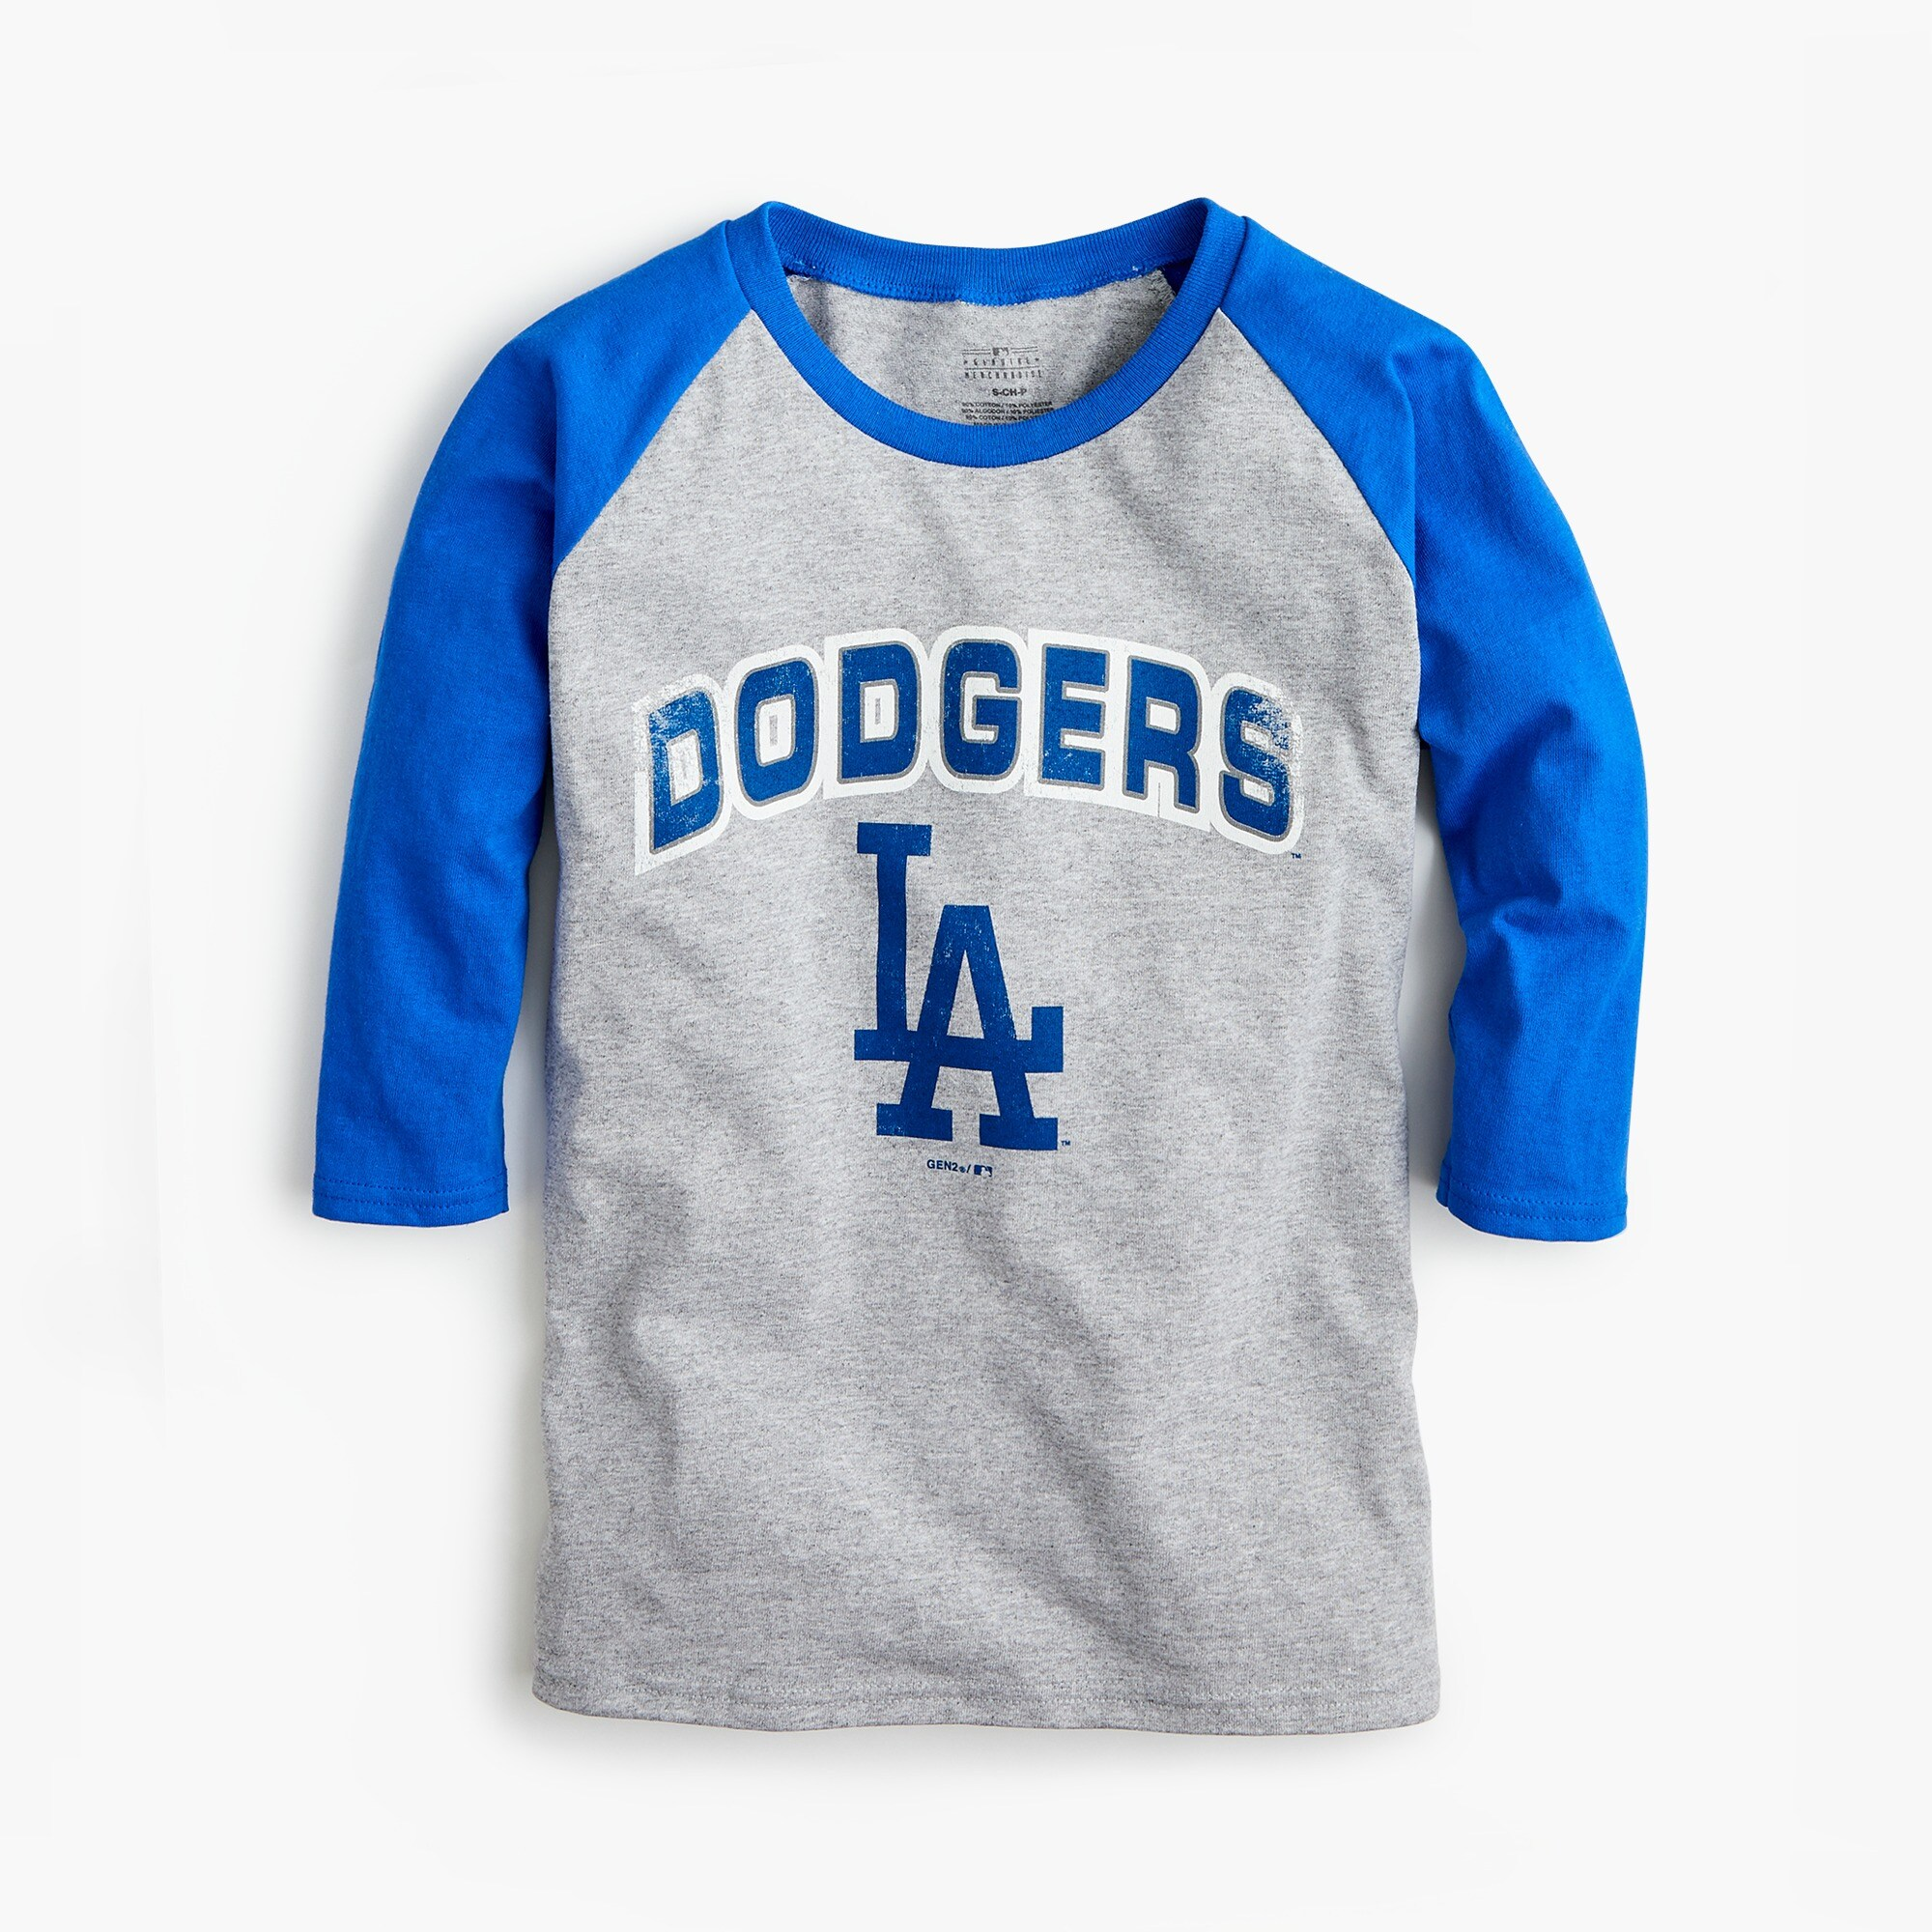 Kids' Los Angeles Dodgers baseball T-shirt boy new arrivals c